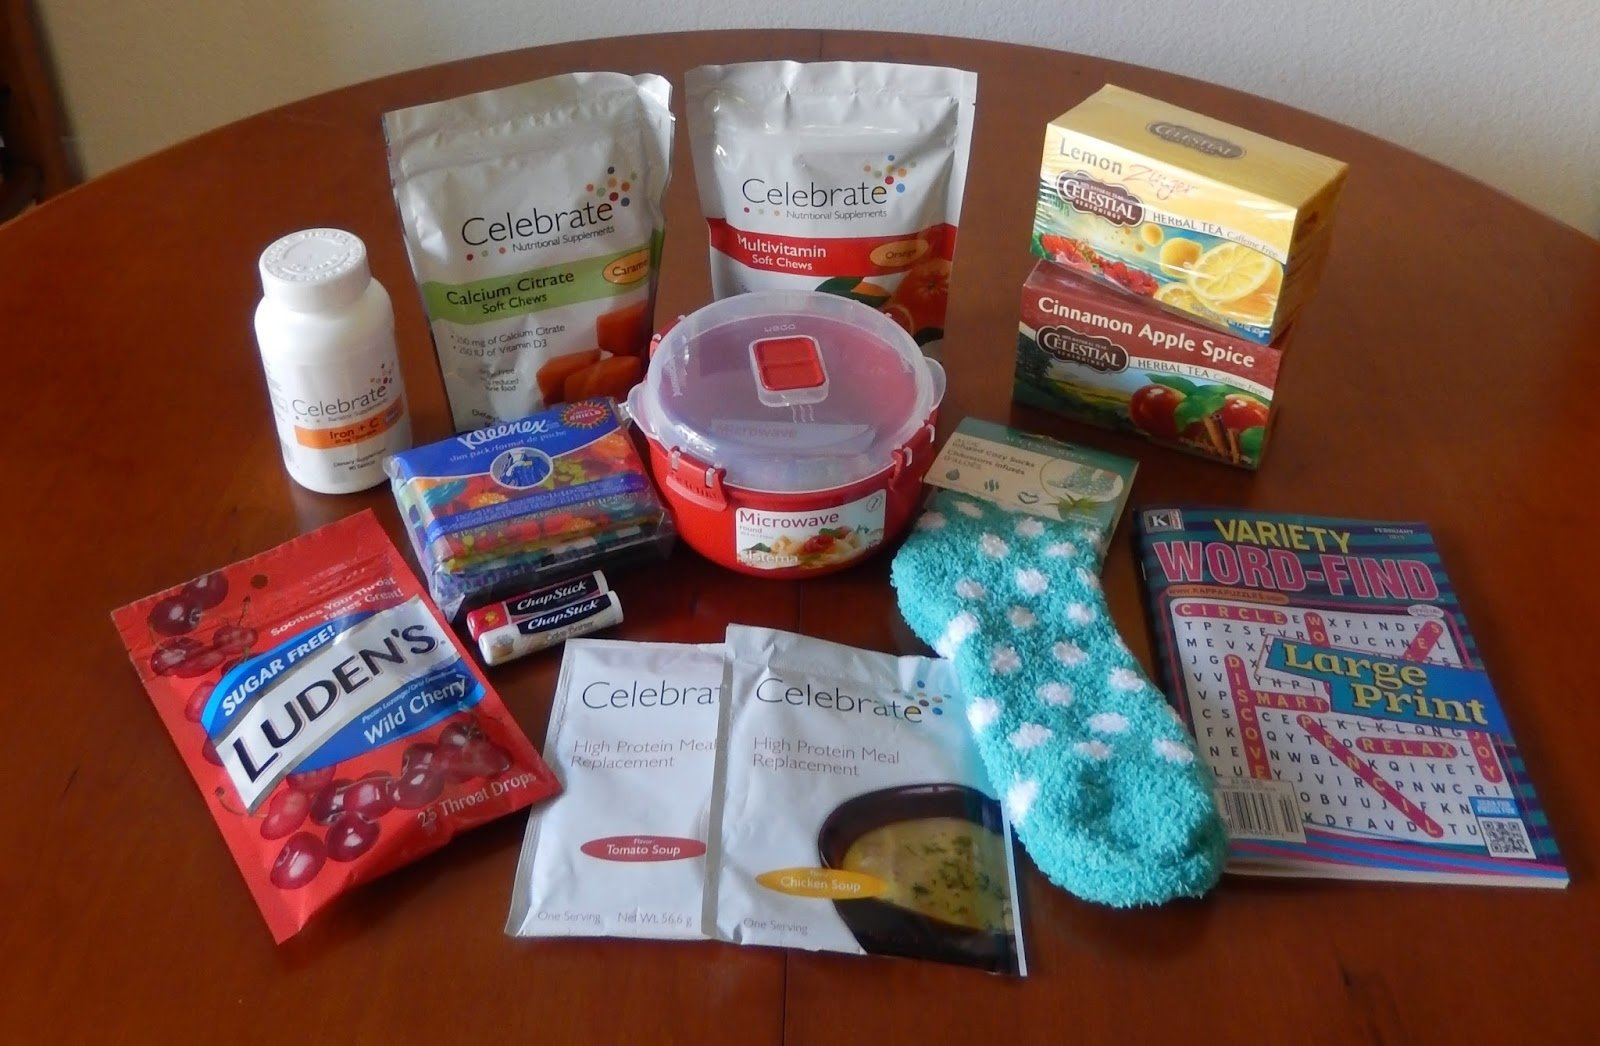 10 Attractive Get Well Soon Care Package Ideas theworldaccordingtoeggface eggface comforting care package giveaway 2020